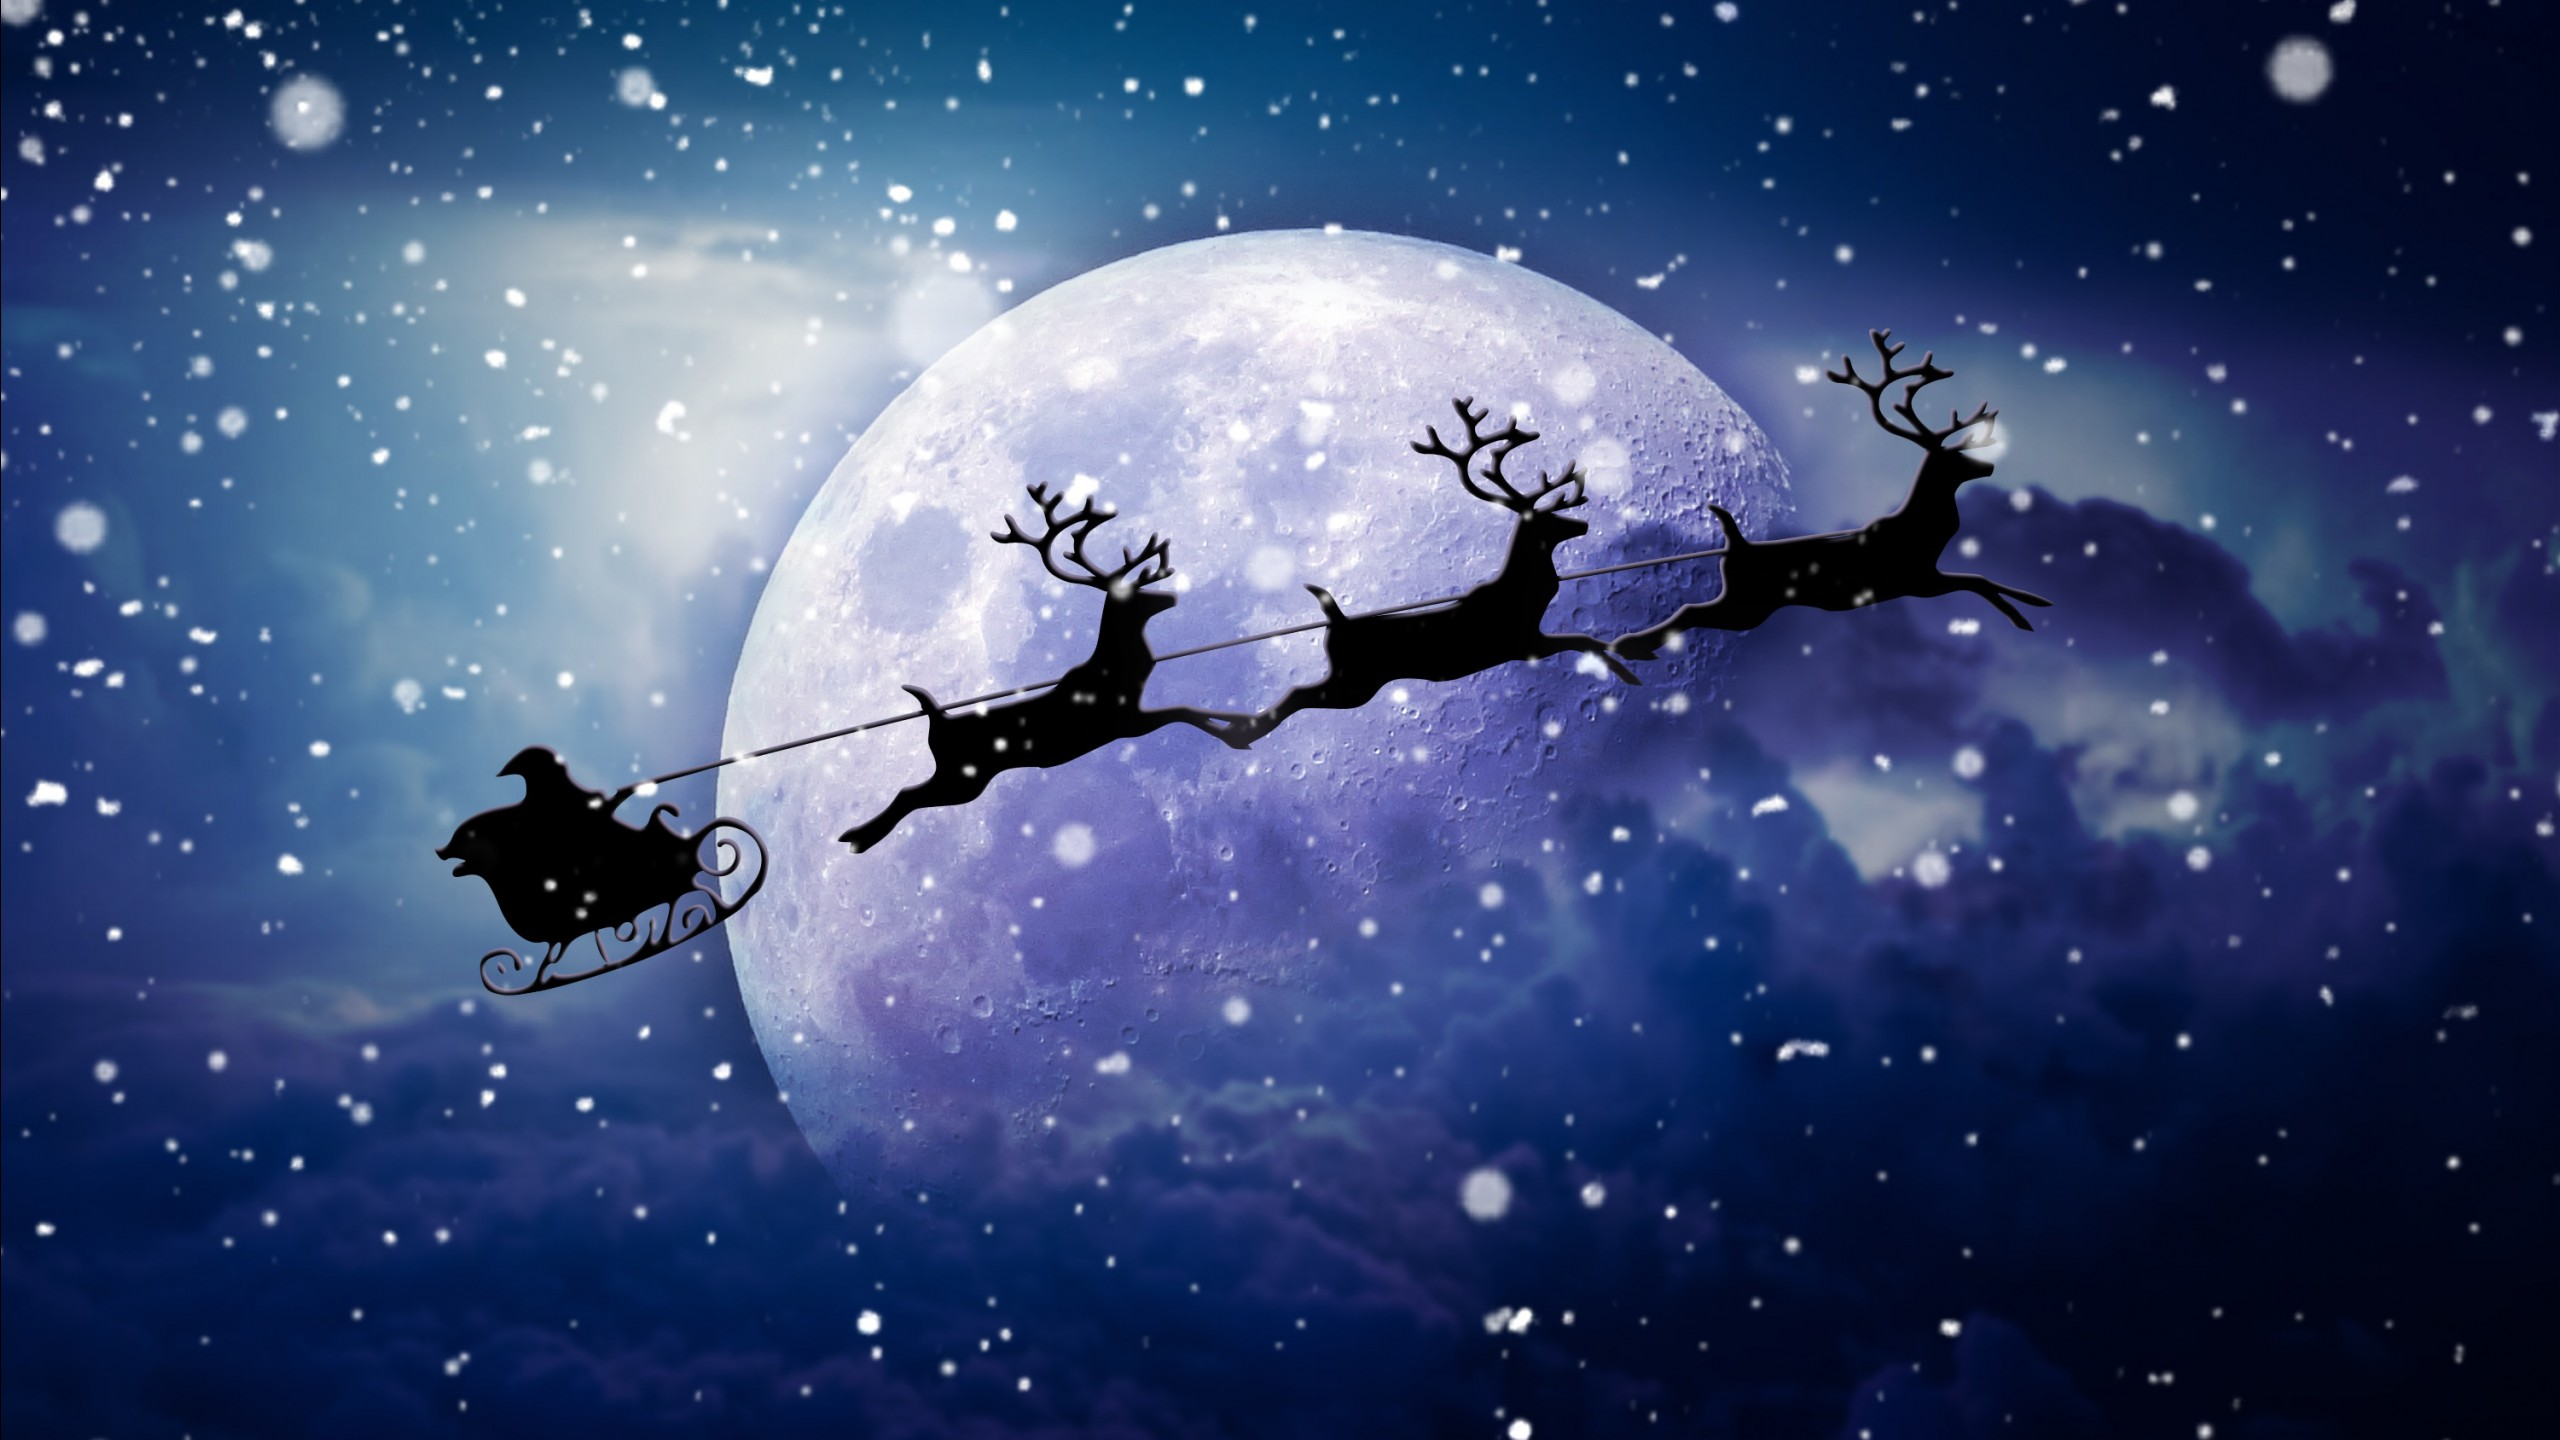 Pure And Original Santa Reindeer Chariot Moon Wallpapers | Hd Wallpapers